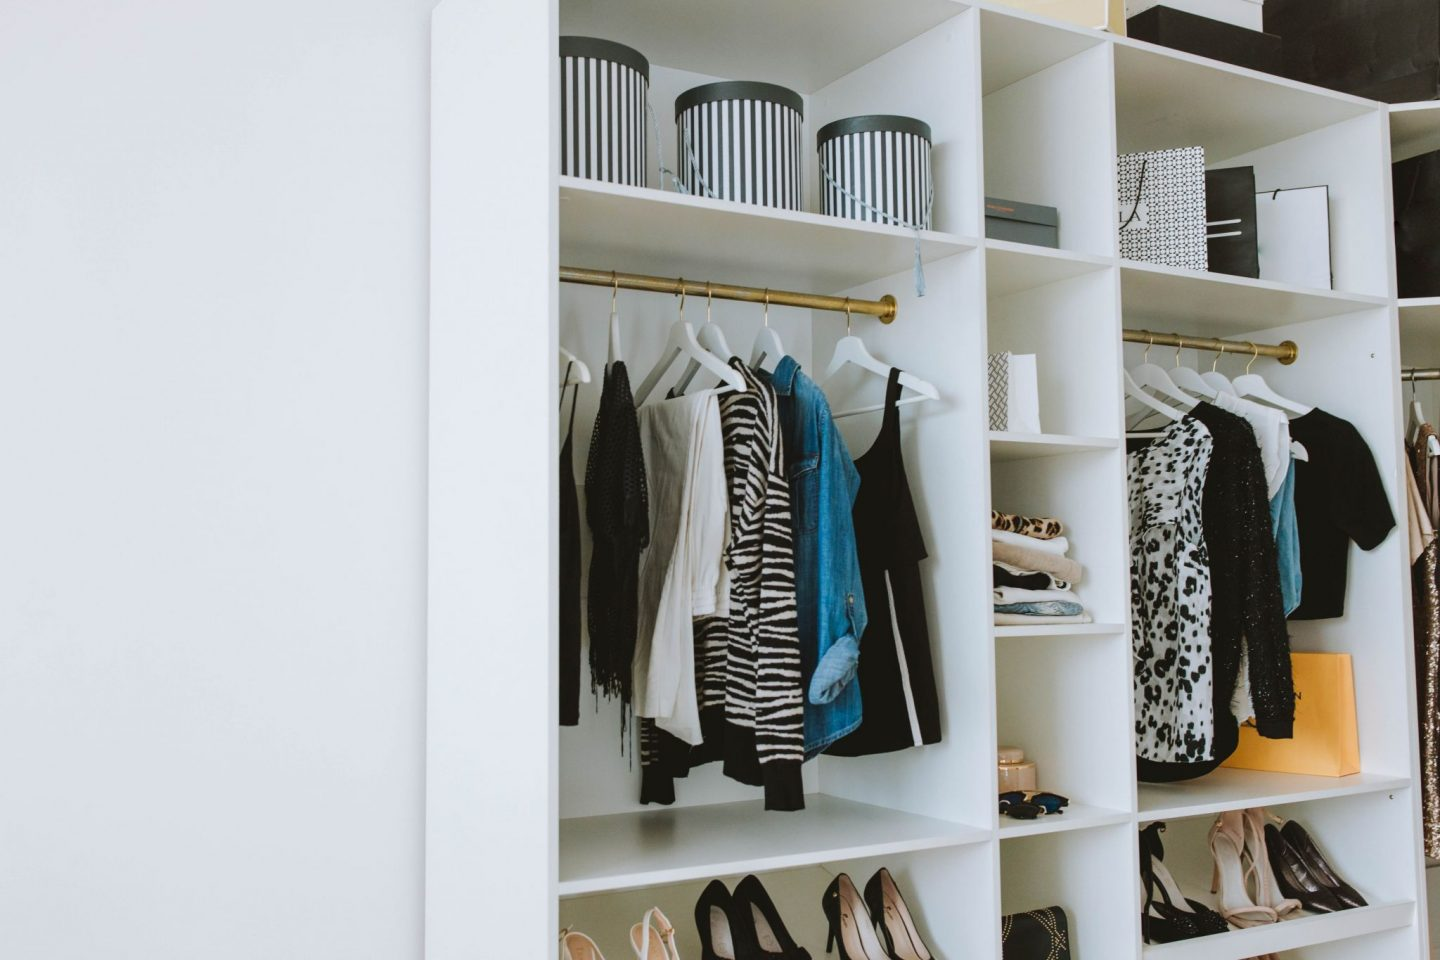 TIPS TO IMPROVE YOUR CLOSET AND WARDROBE